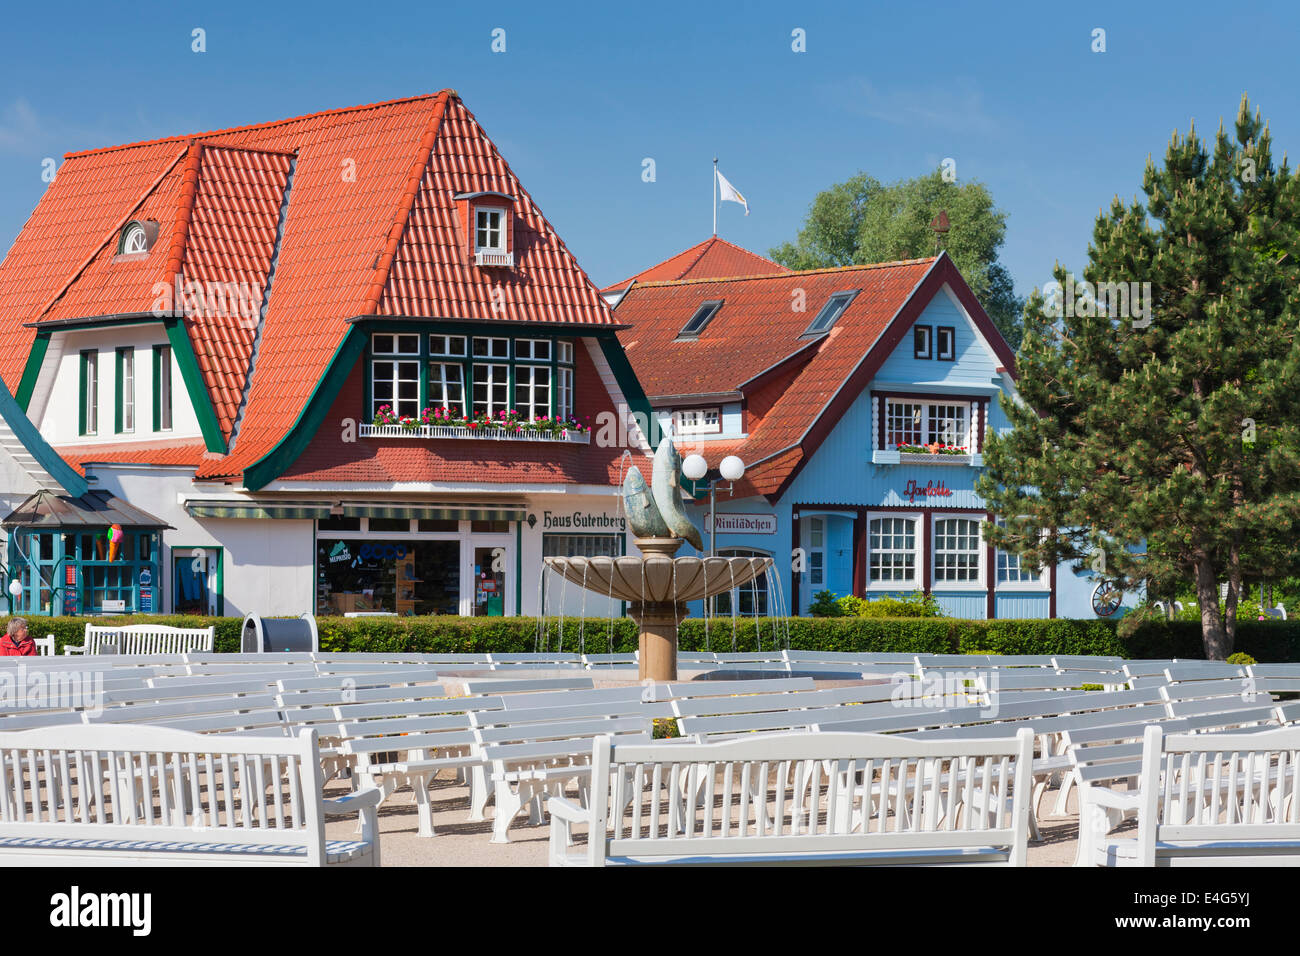 Shops in traditional style at Boltenhagen, seaside resort along the Baltic Sea, Mecklenburg-Vorpommern, Germany - Stock Image